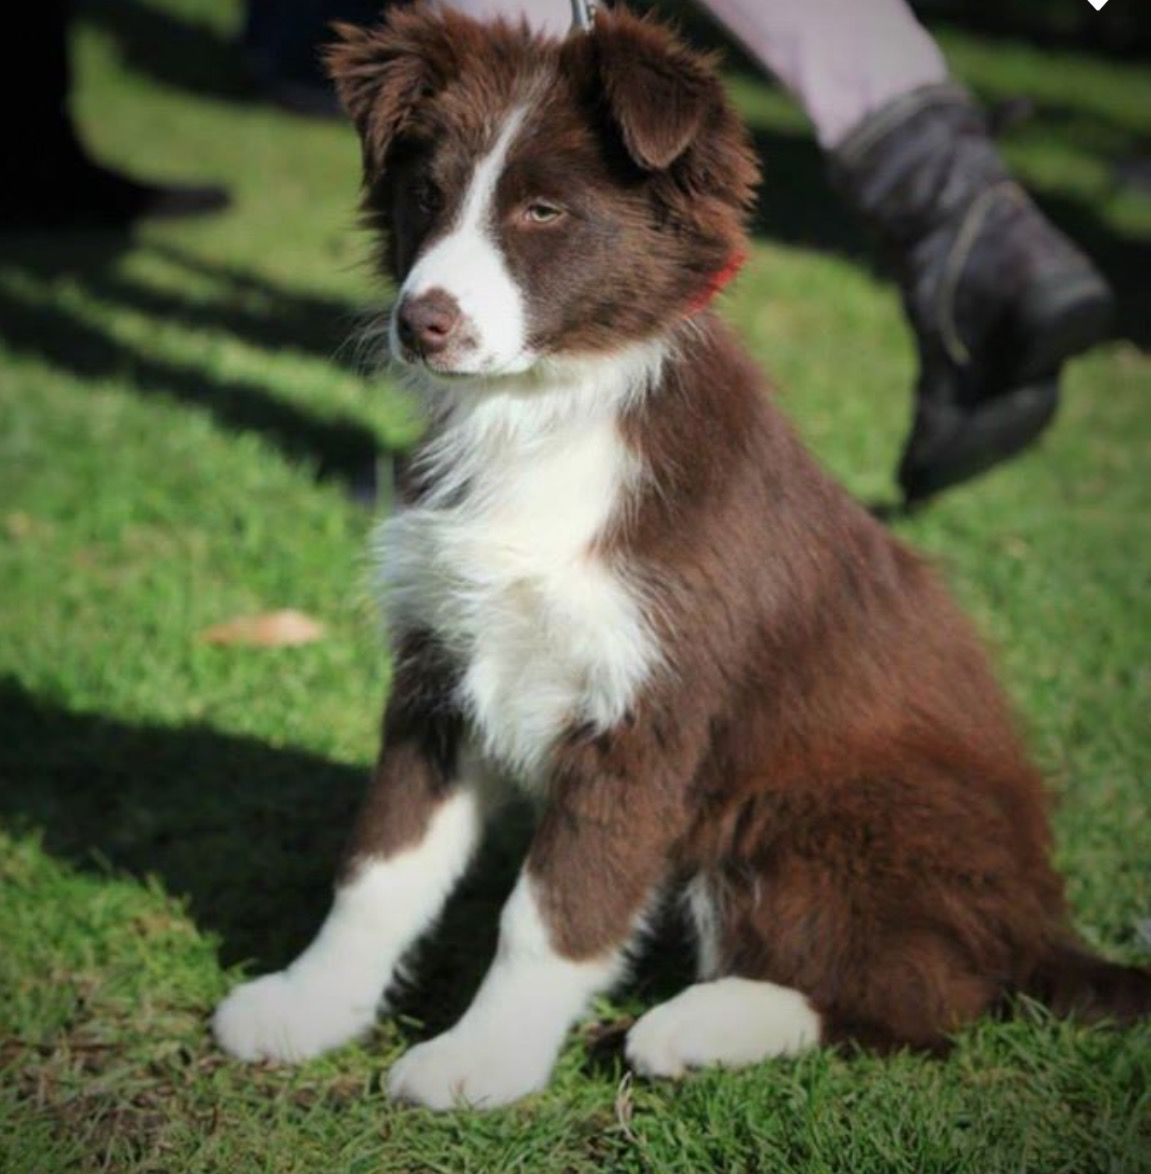 Collie Your Dog Dog Leash Training Collie Puppies